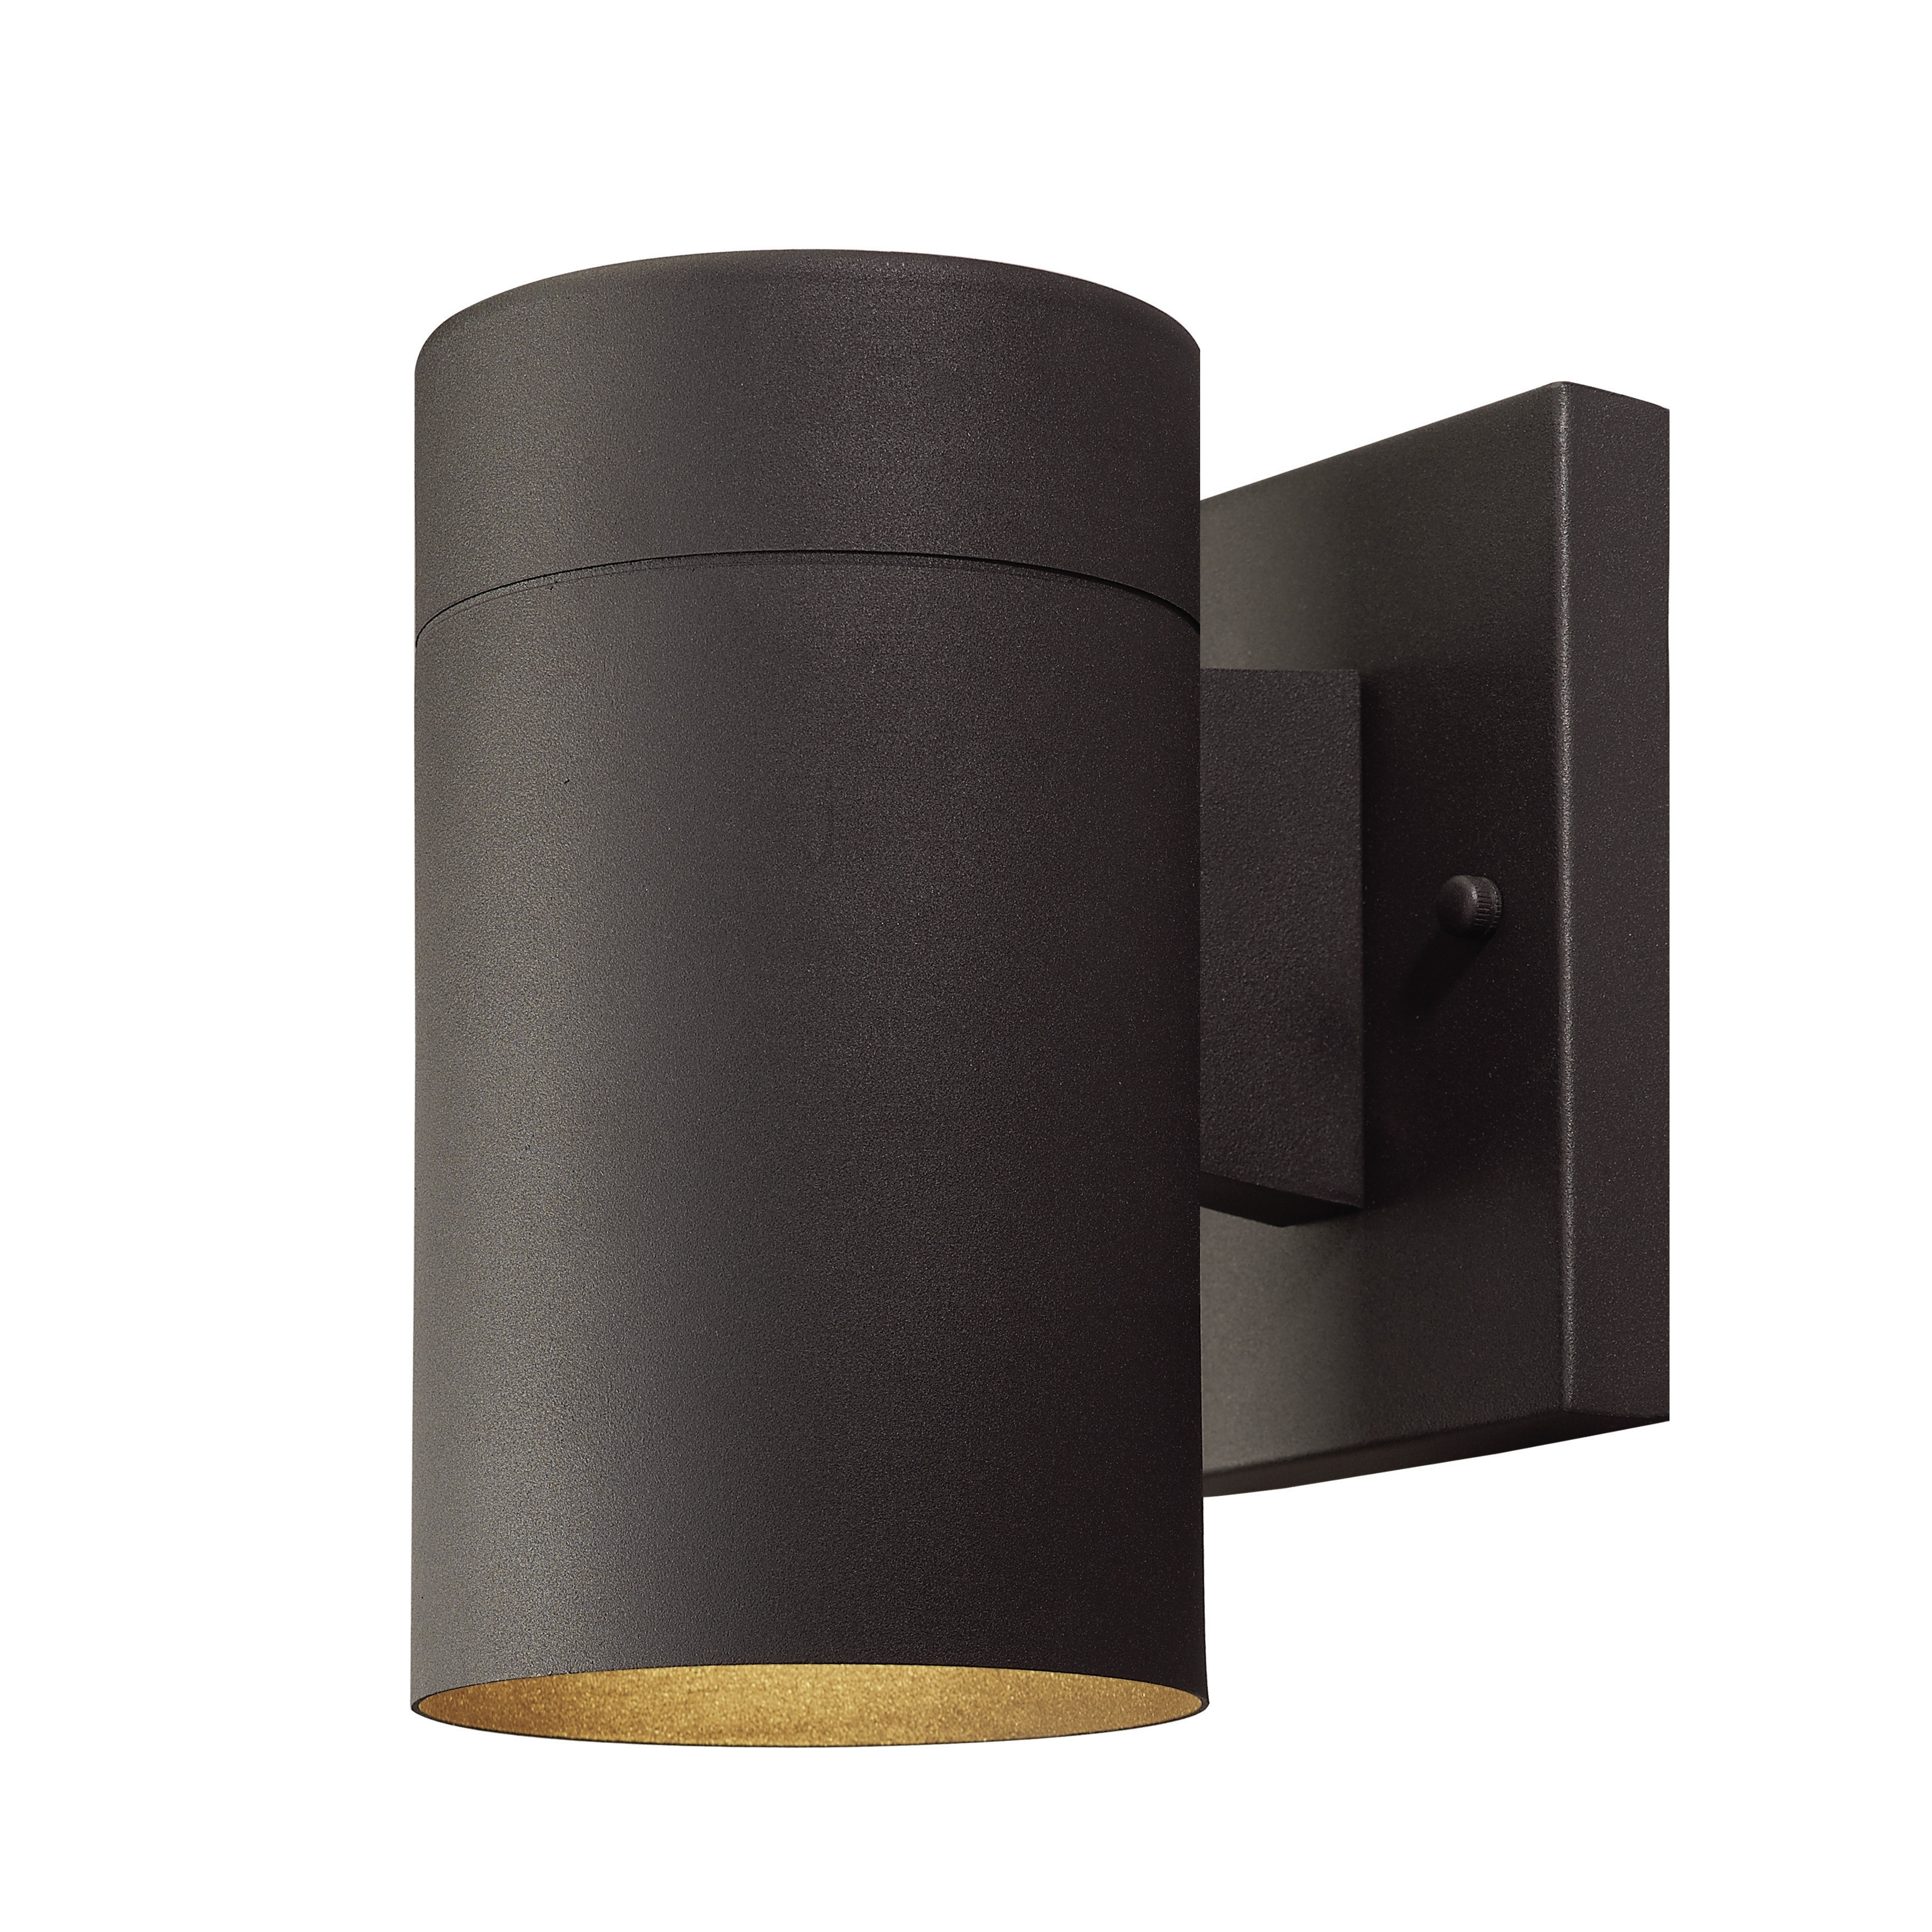 Well Liked Modern Outdoor Wall Lighting Allmodern 1 Light Sconce ~ Loversiq Pertaining To Diy Outdoor Wall Lights (View 20 of 20)